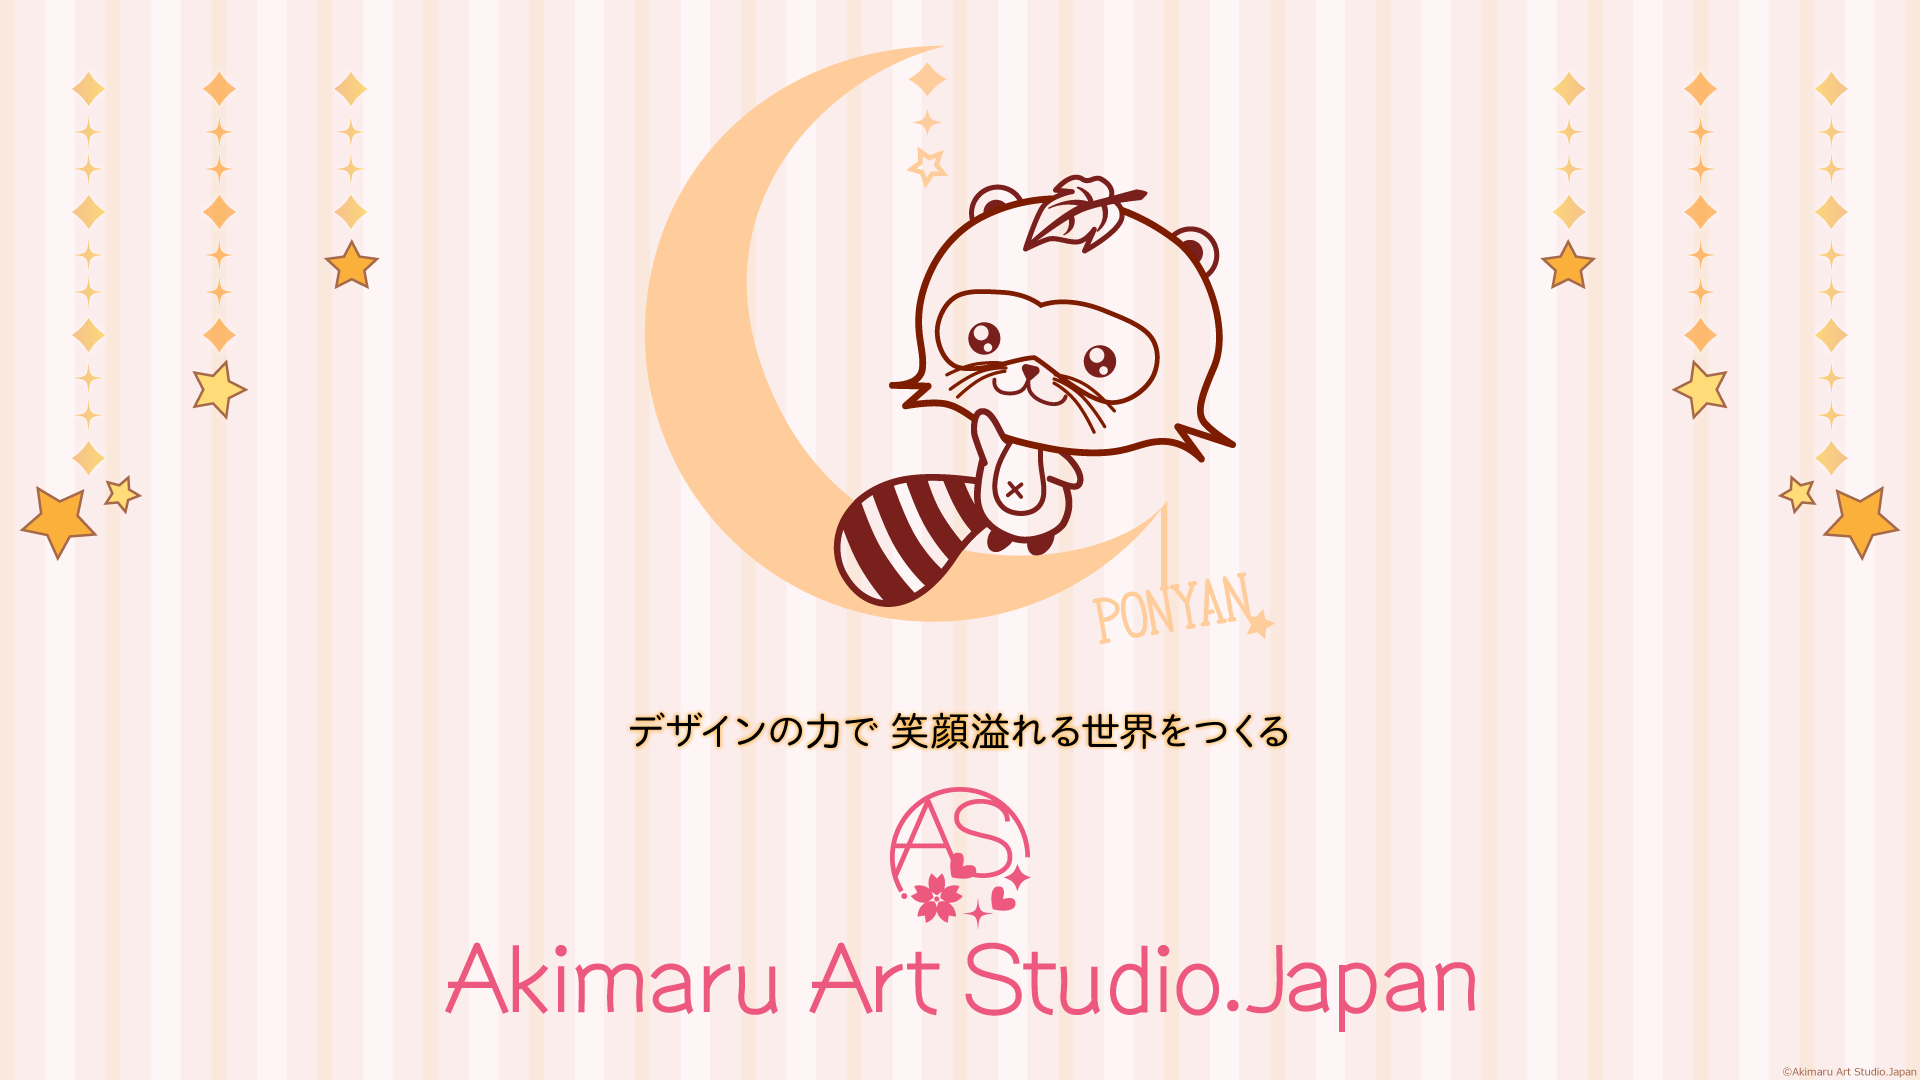 Akimaru Art Studio.Japan